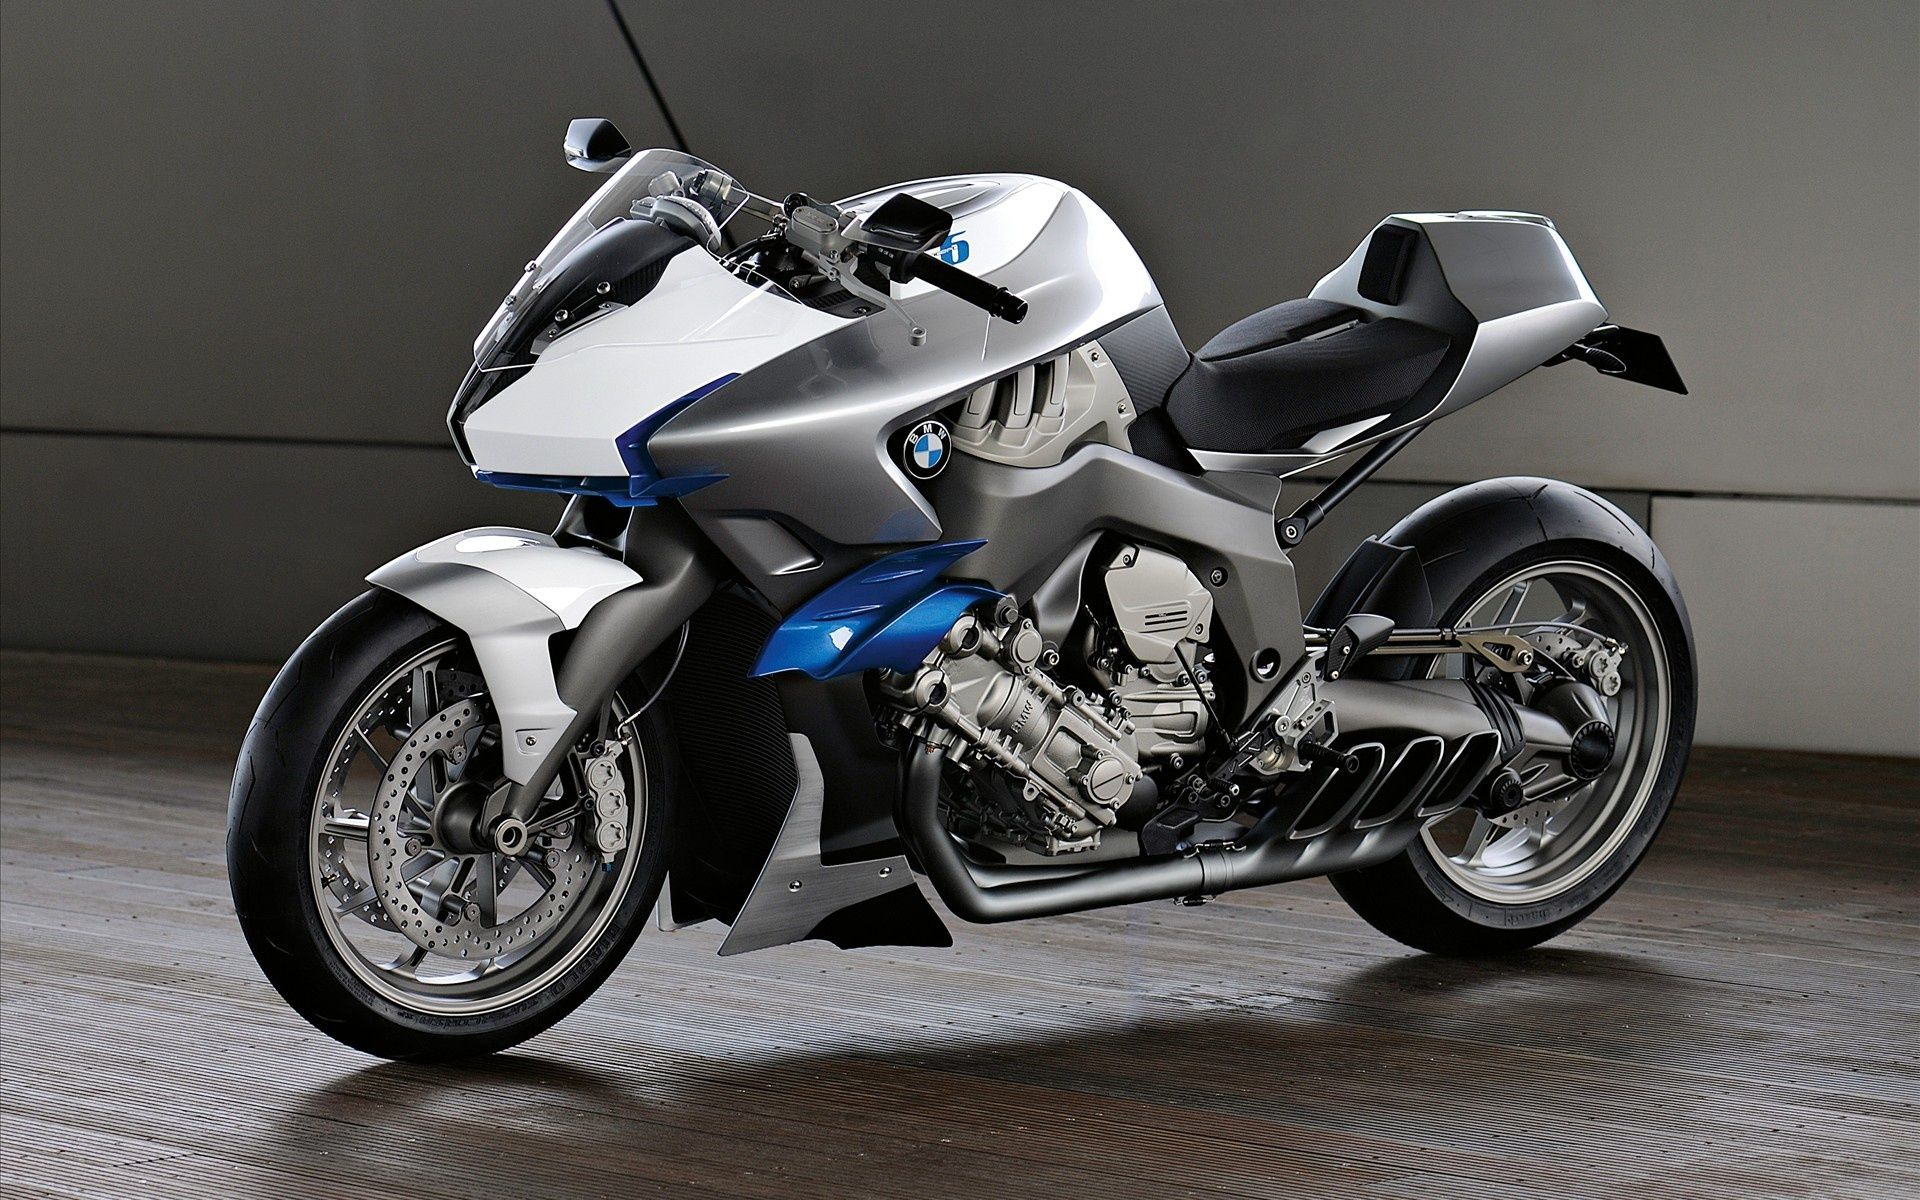 Riders Rejoice As Bmw Increases Warranty For New Motorcycles To Three Years Imotorbike News